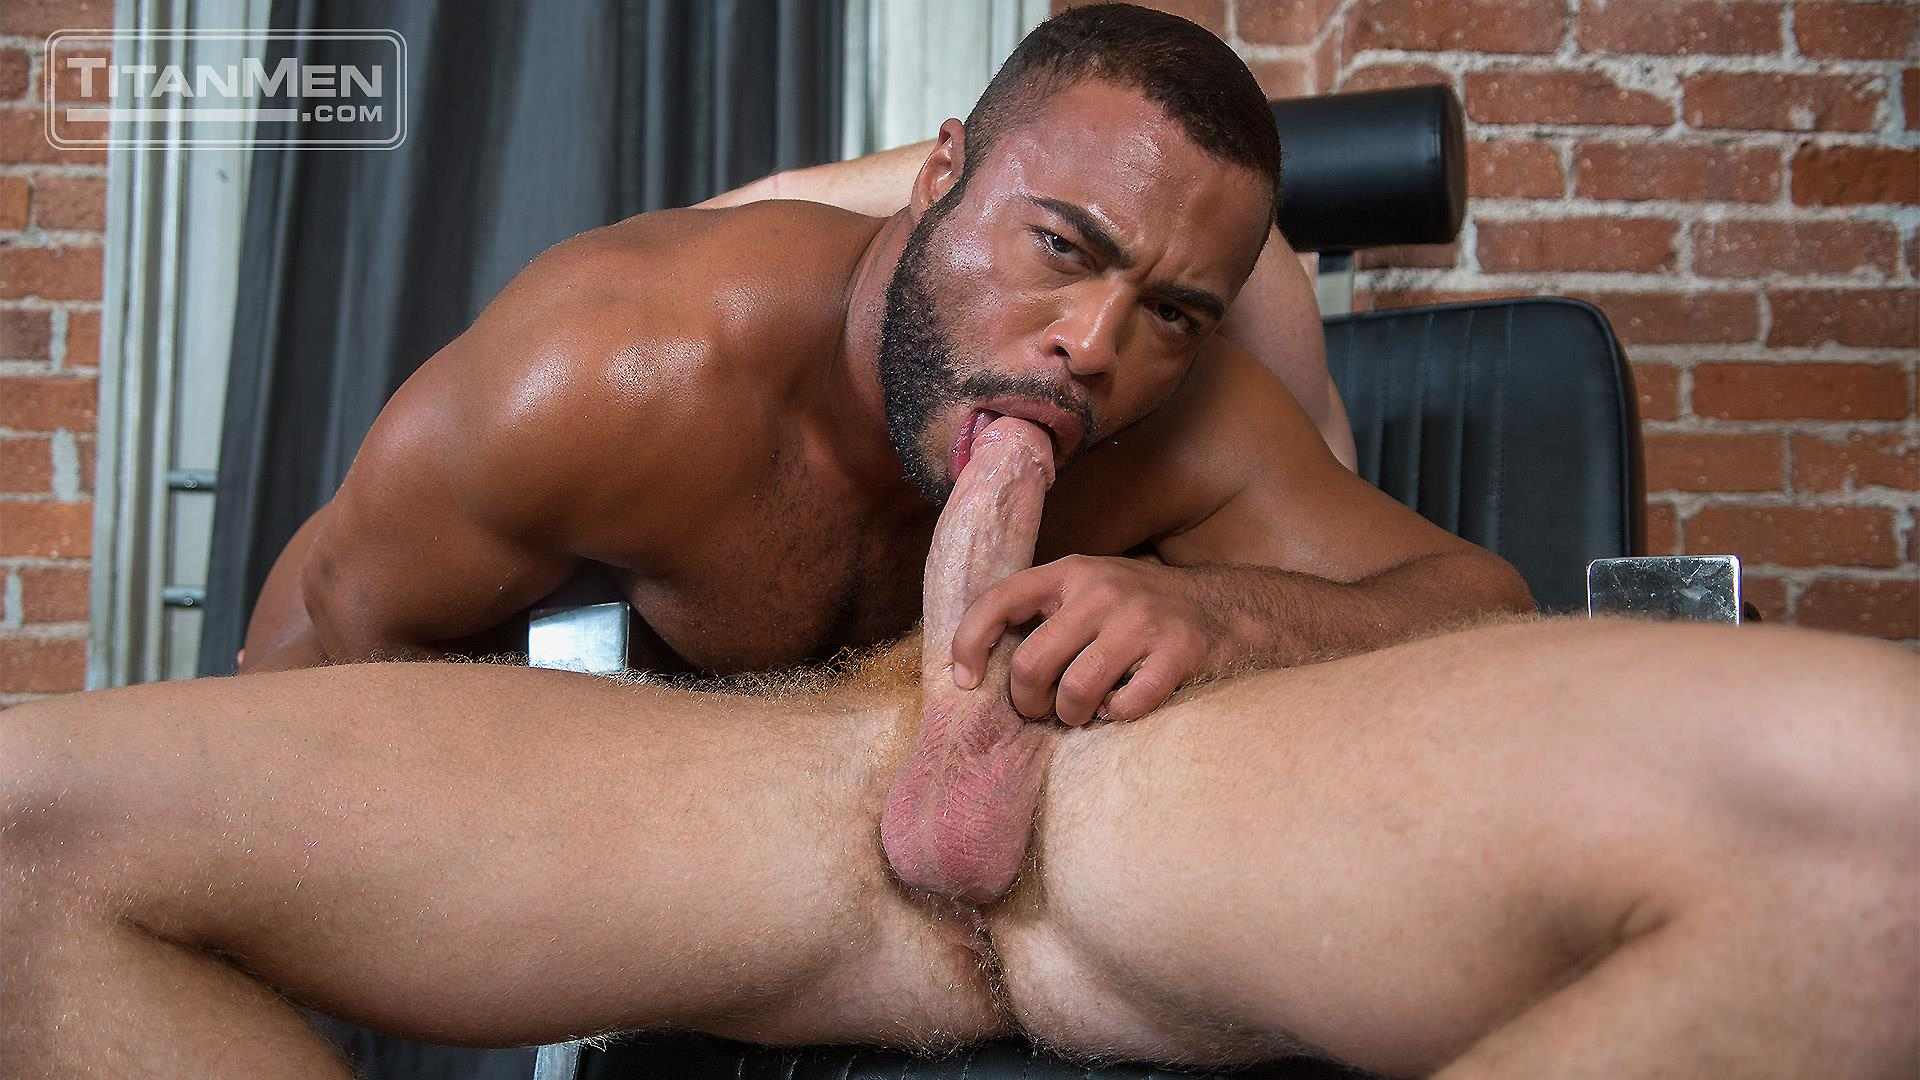 Interracial Gay Men Sex